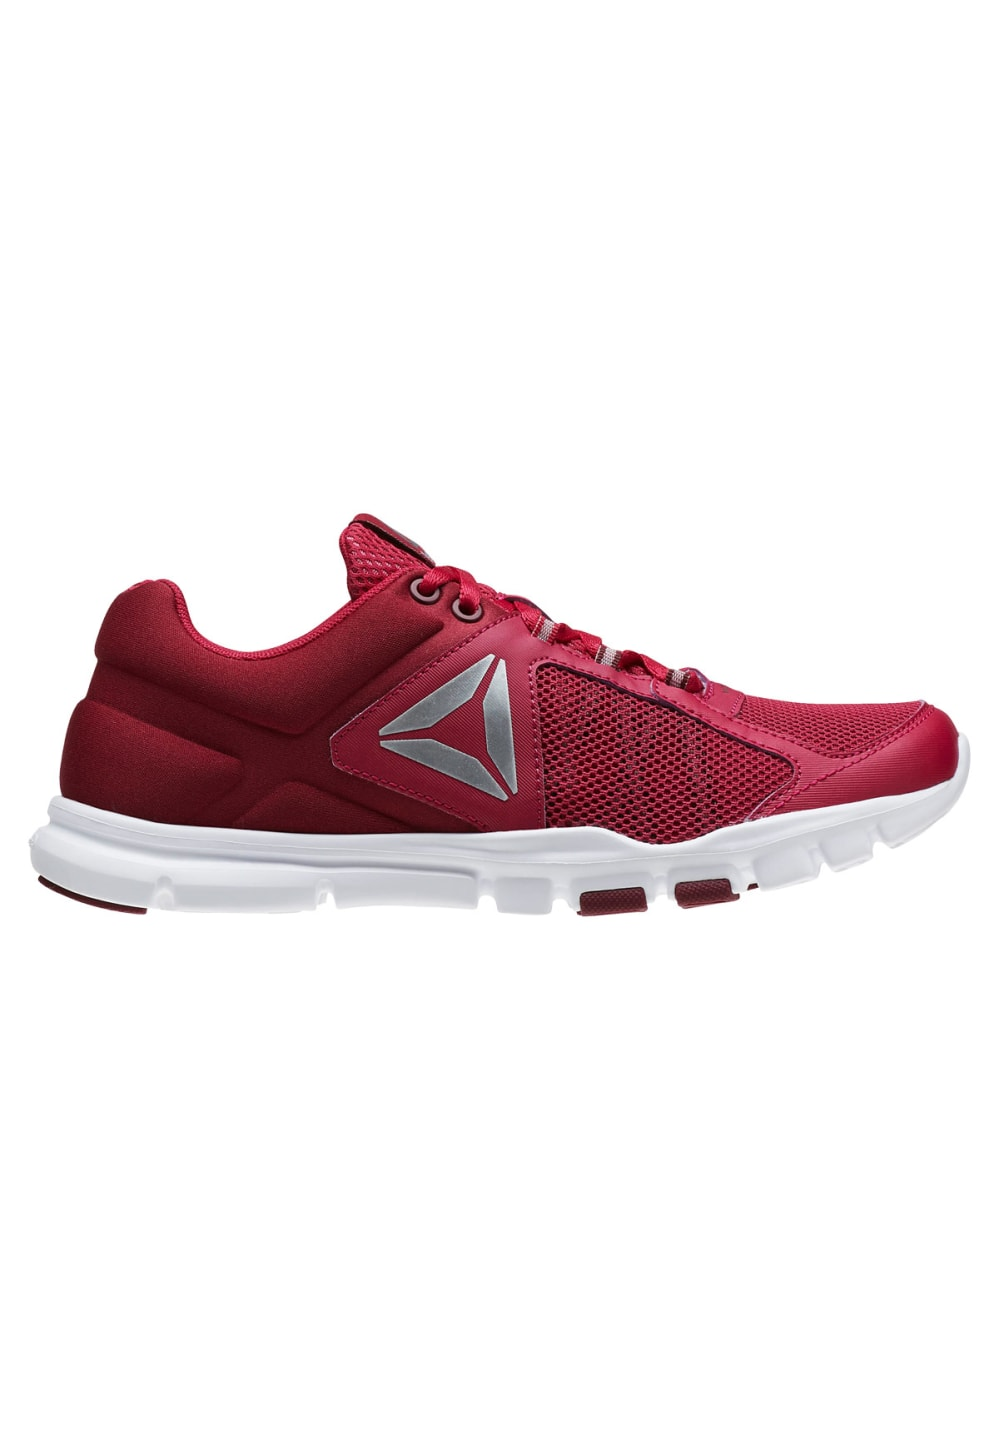 Next. -60%. Reebok. Yourflex Trainette 9.0 MT - Fitness shoes for Women d7a1789ee